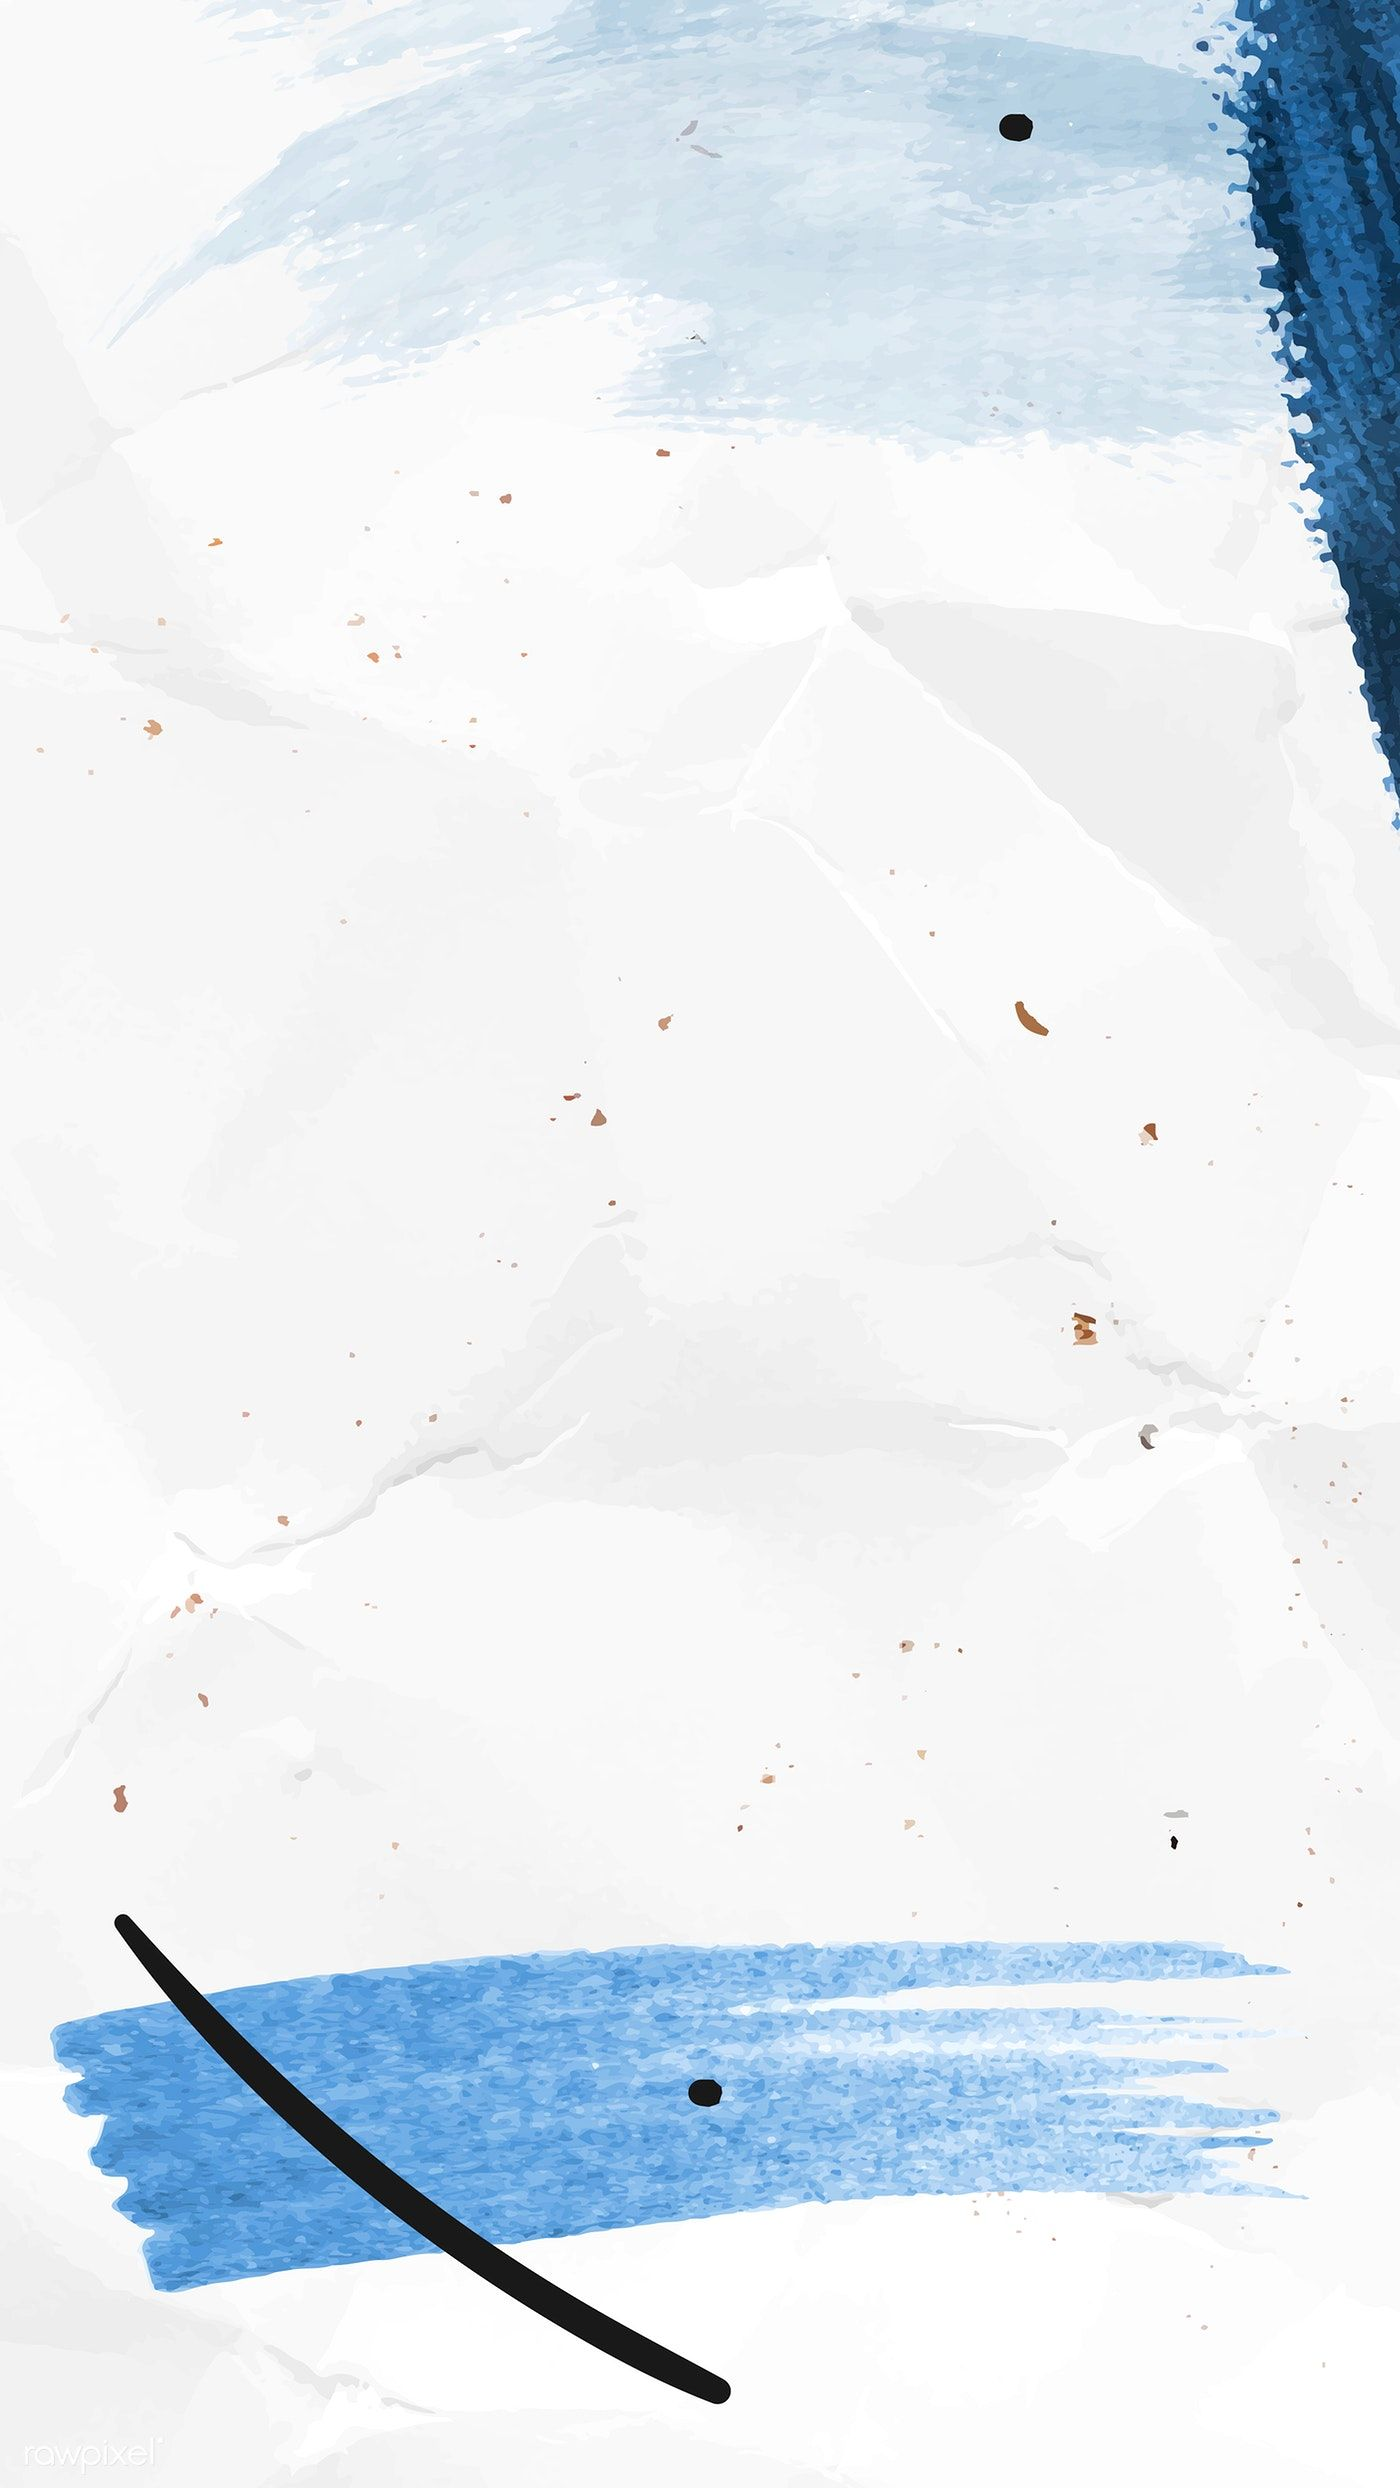 Download premium vector of Blue brushstroke on a crumpled paper background